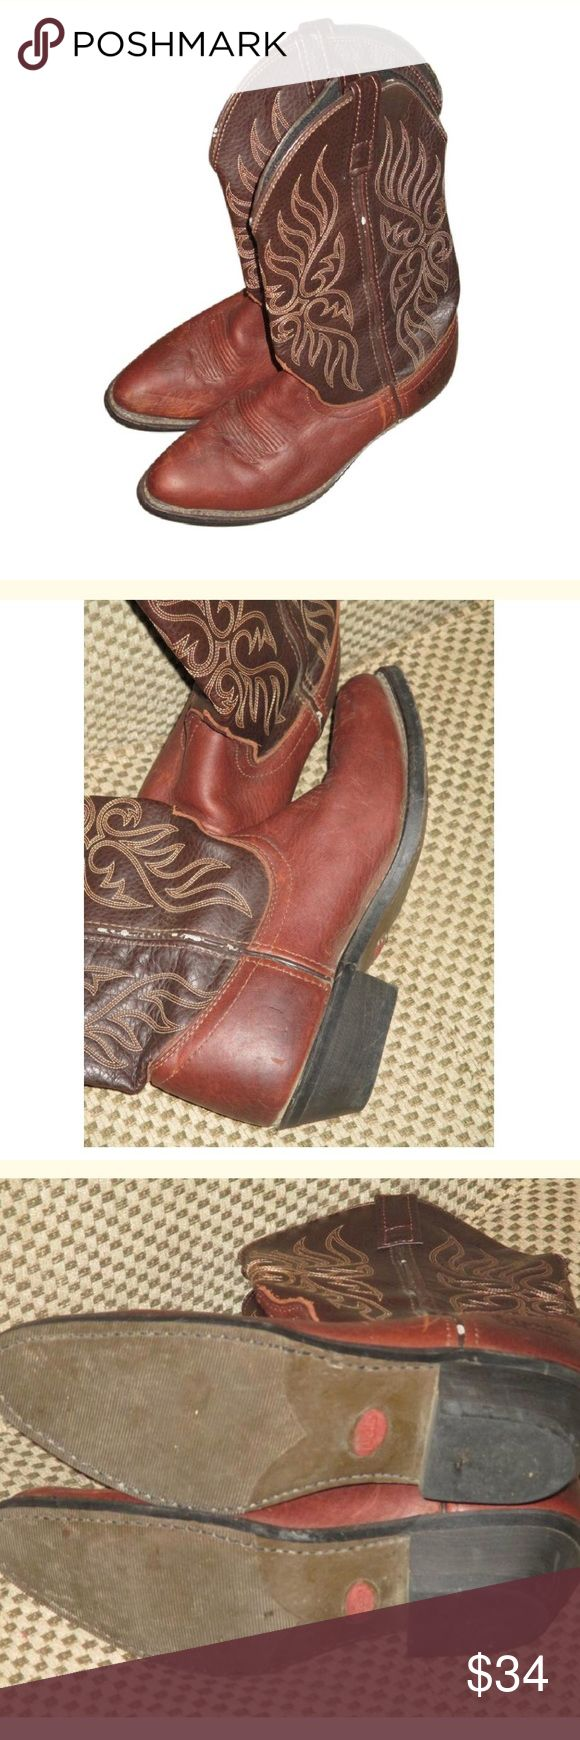 Laredo Women's Brown Cowboy Western Boots SZ 8 These are awesome!! Few scuffs but overall in great condition Laredo Shoes Heeled Boots